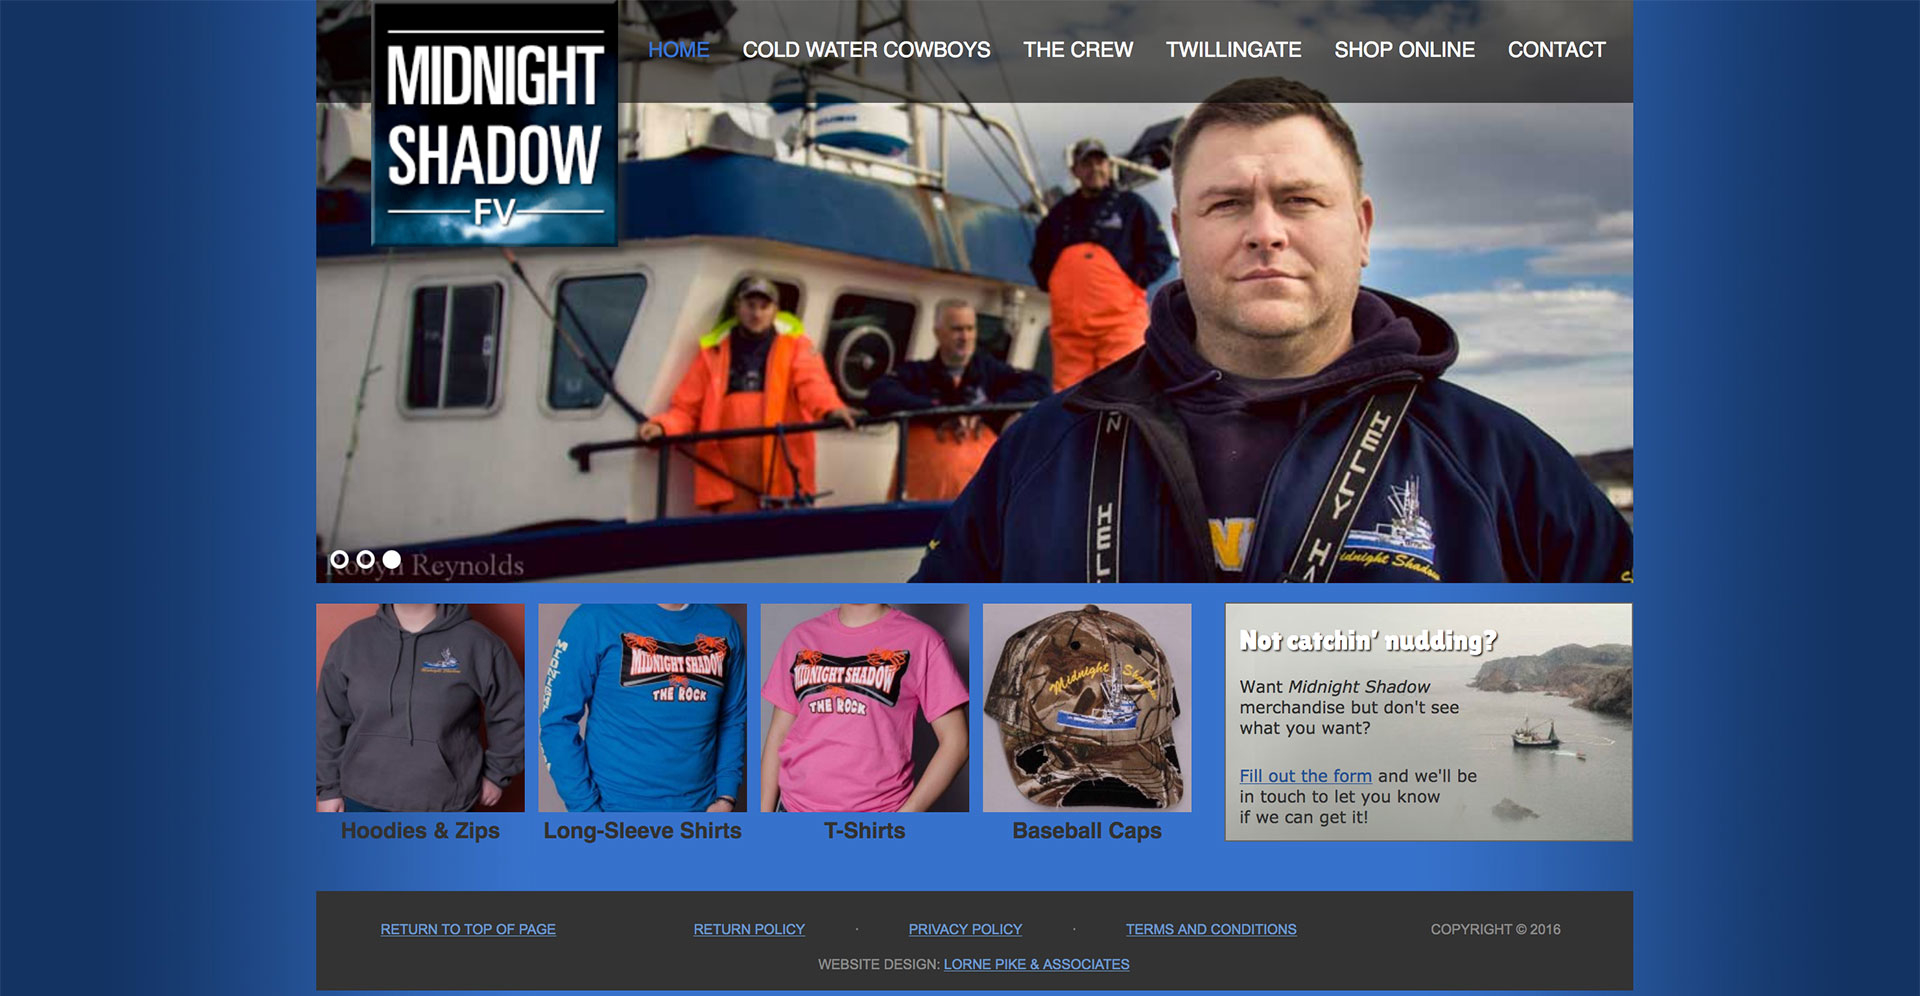 Lorne Pike & Associates in St. John's: We designed this user-friendly eCommerce website for the owners of the Midnight Shadow, from Discovery Channel's Cold Water Cowboys. Even with no previous Internet experience, they can now easily sell a wide range of apparel right from their home.